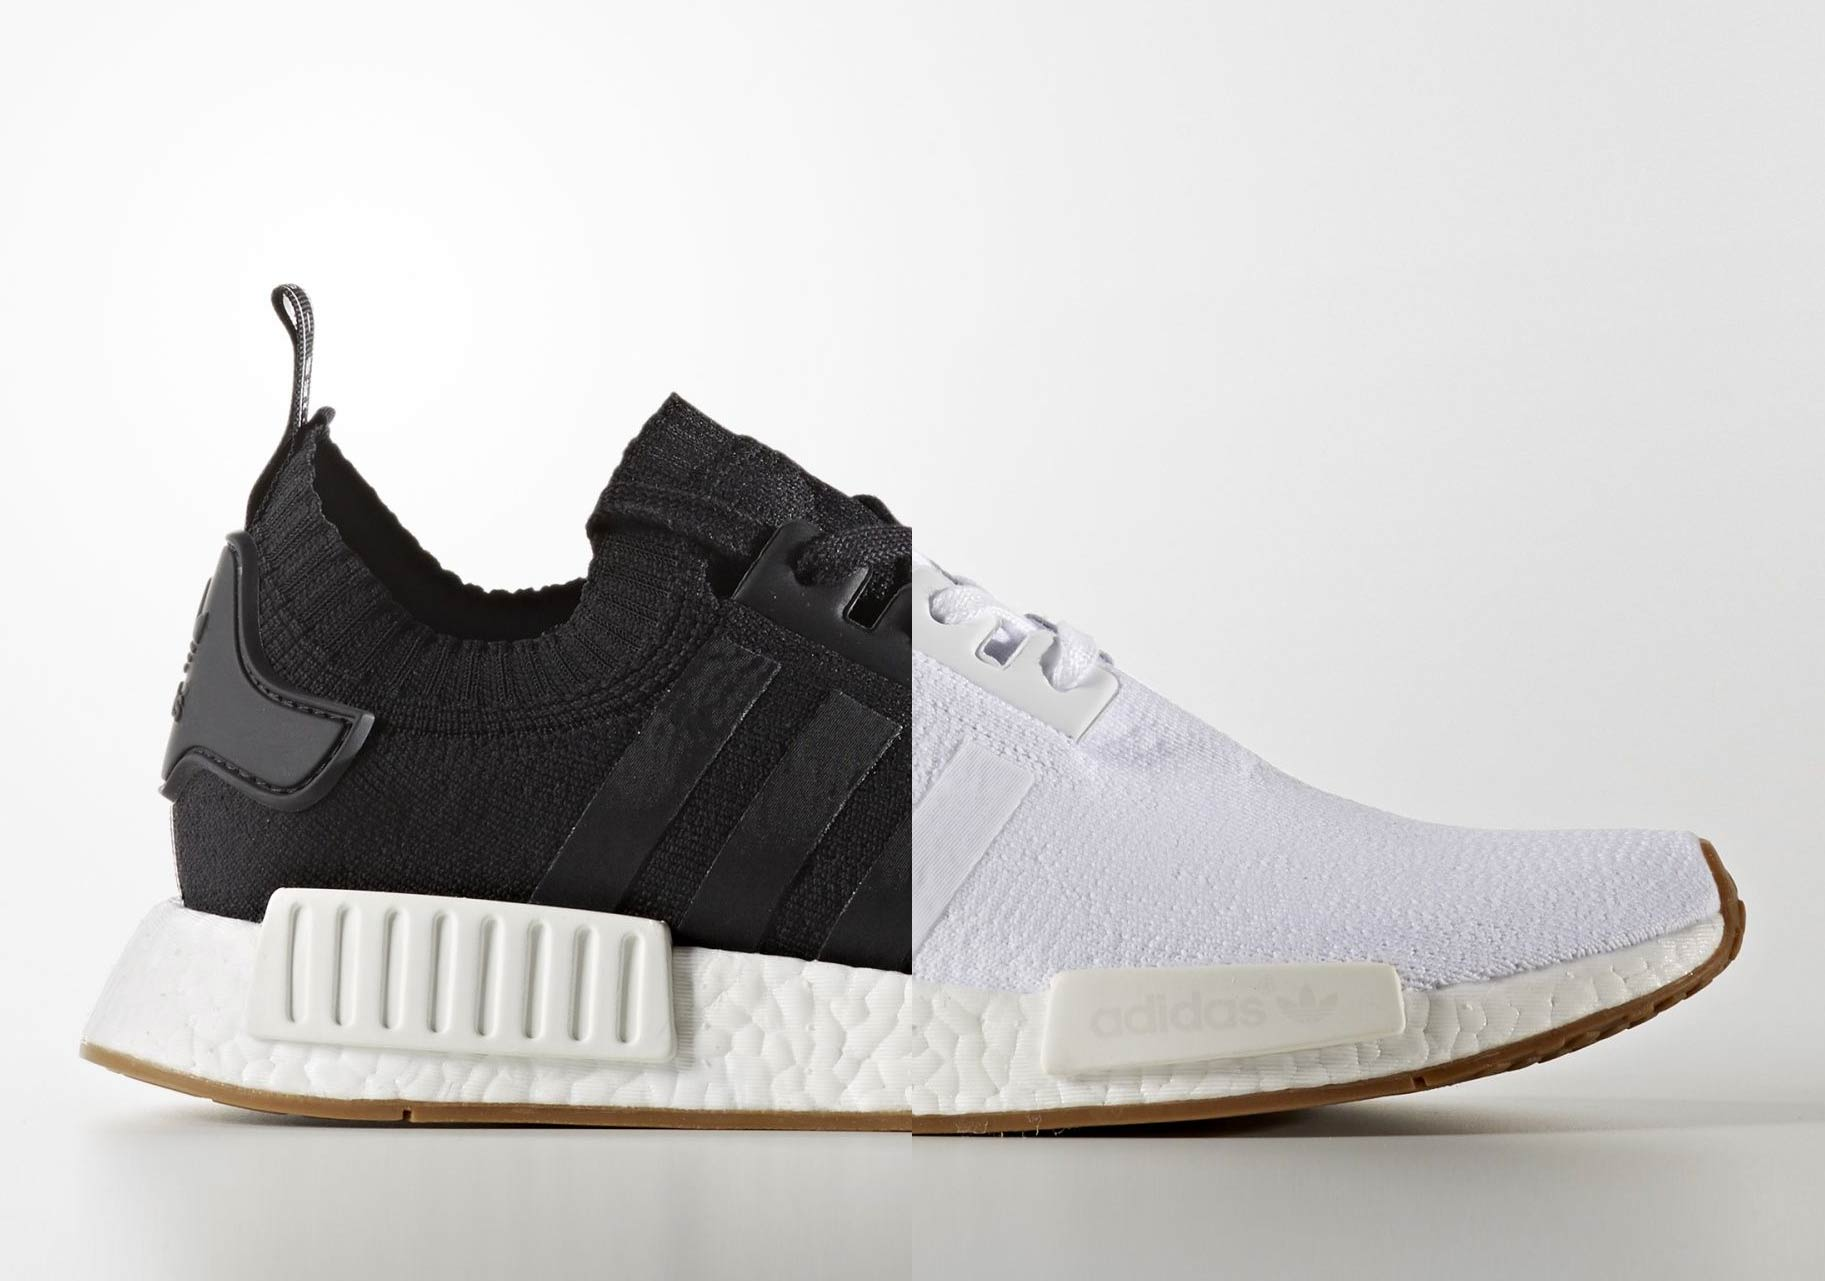 9bc66bf433f84 adidas NMD R1 Gum Pack Release Info